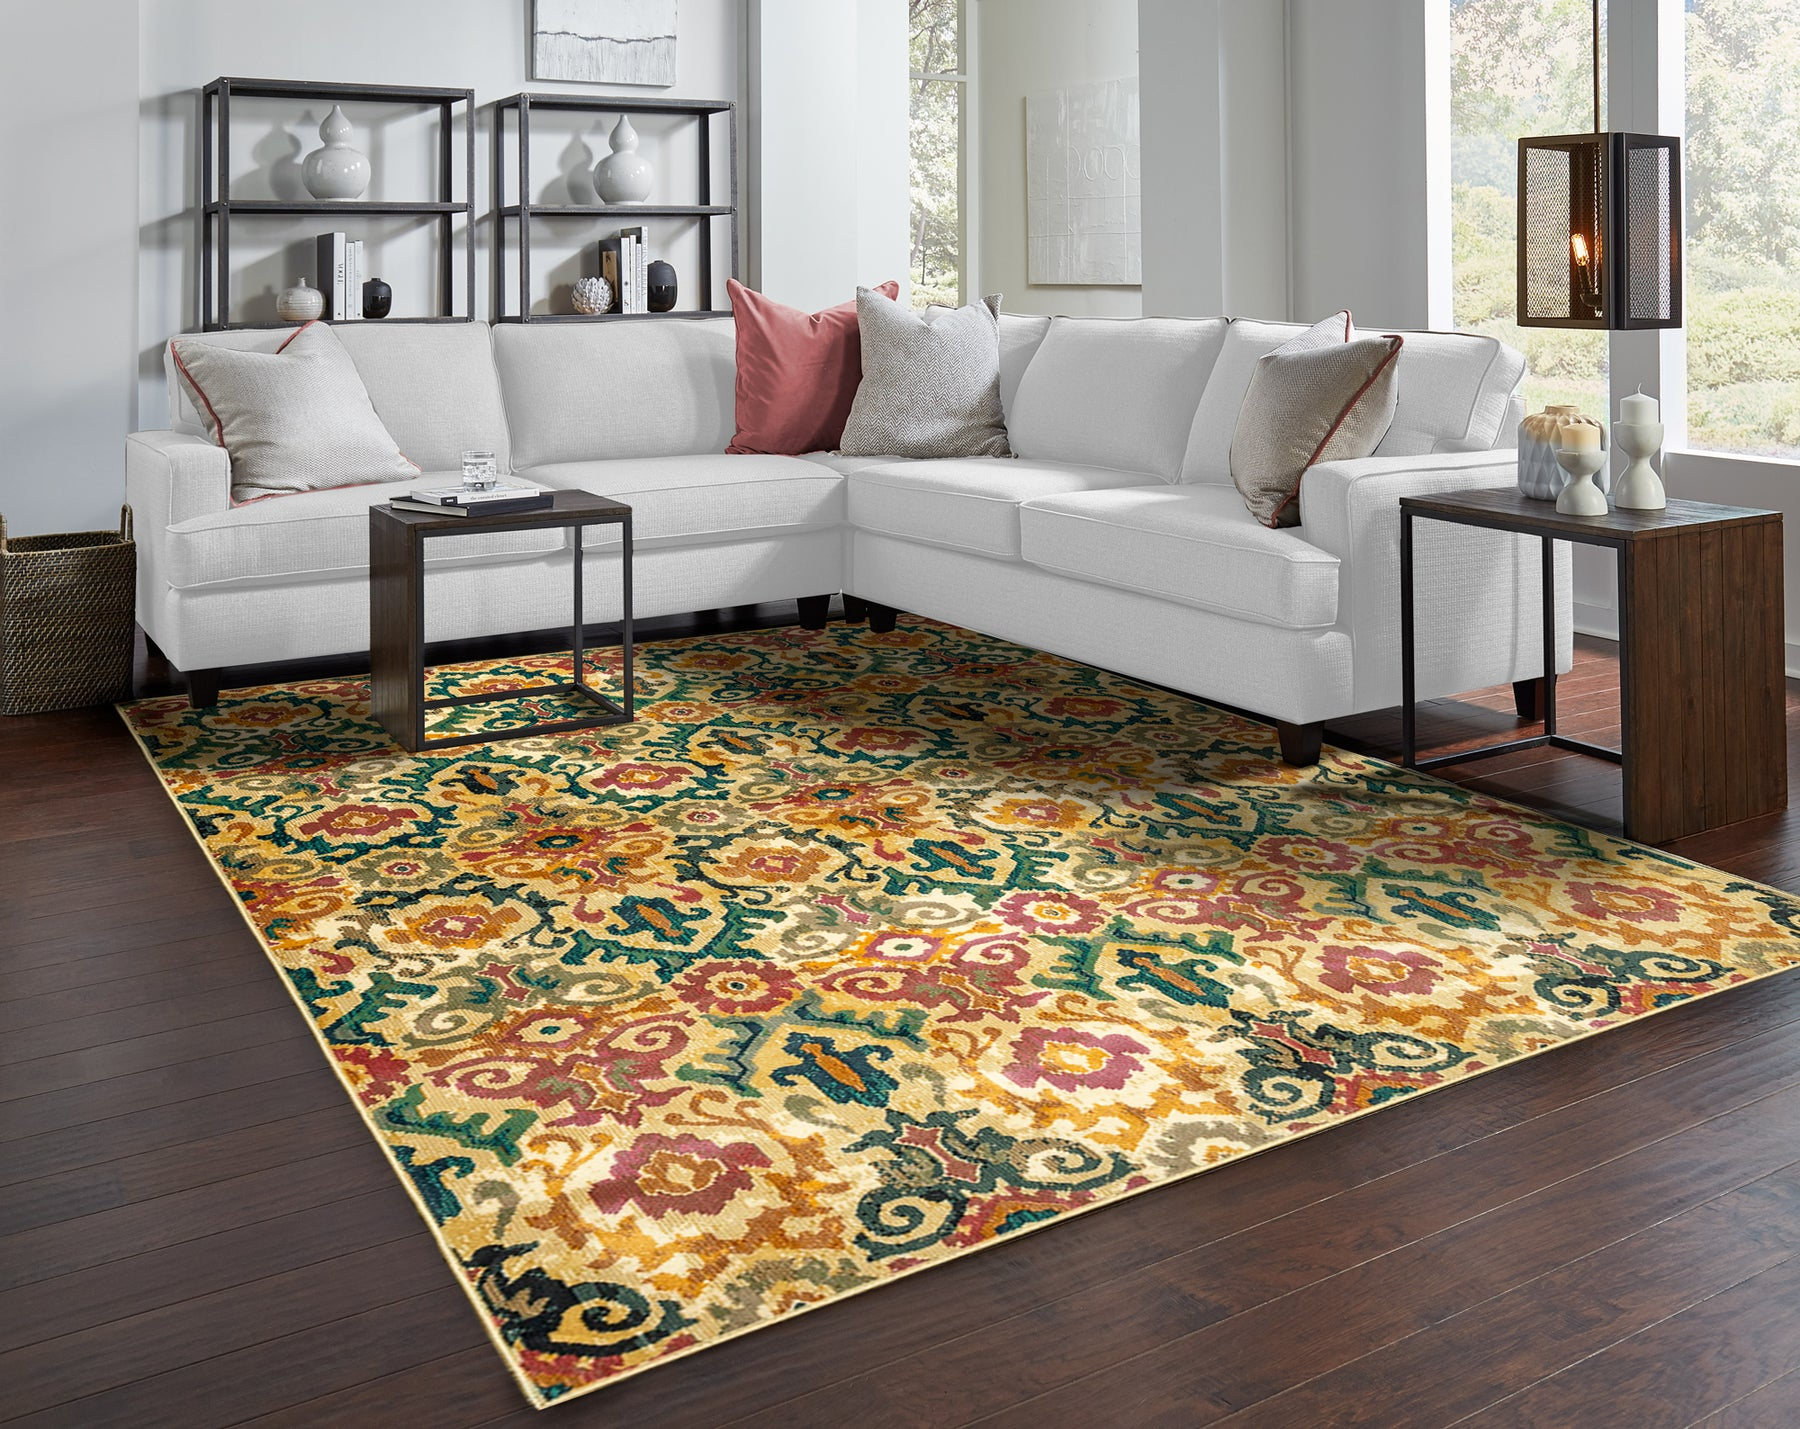 How to Pick the Right Rug for Your Space